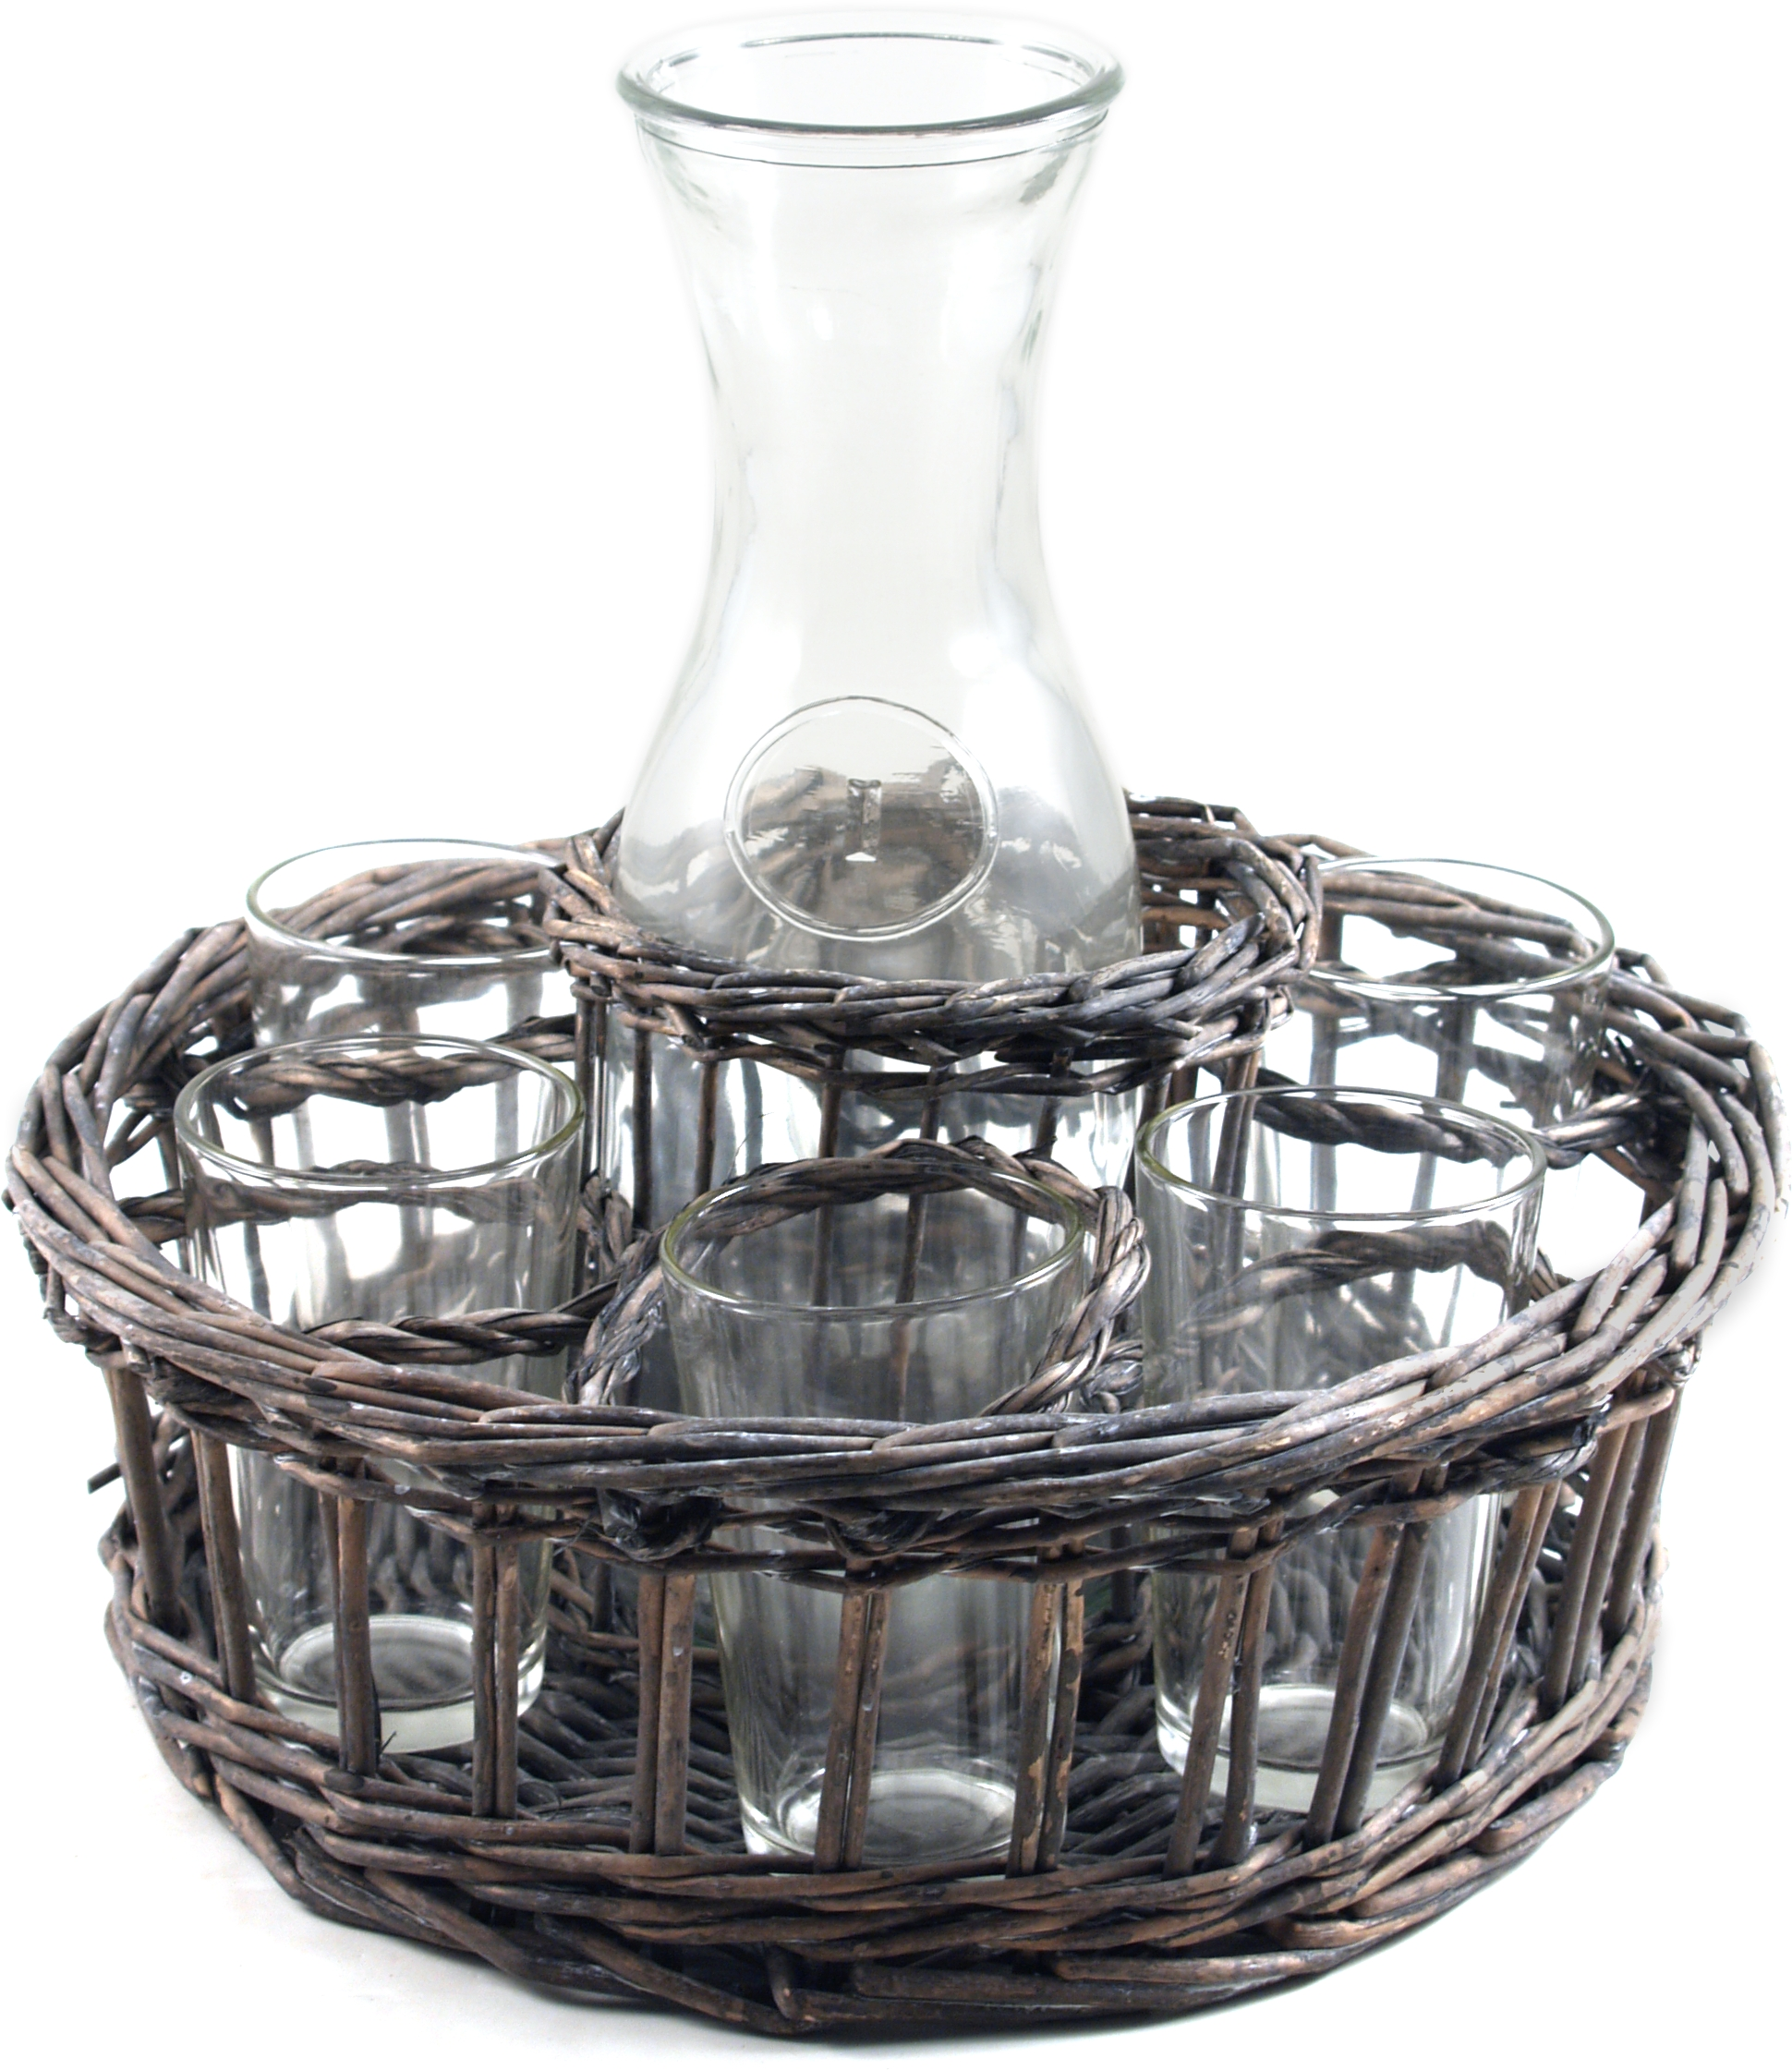 Willow Basket 8 Piece Milk Bottle and Glass Set